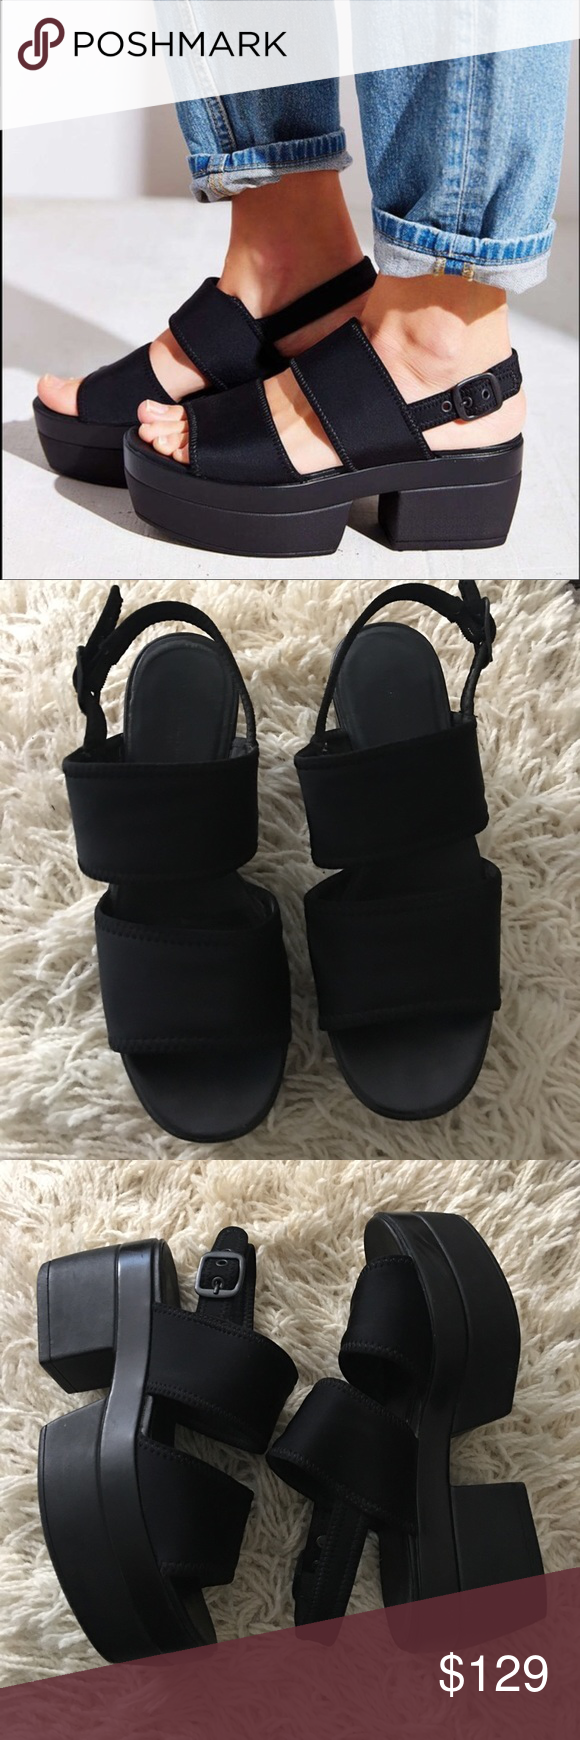 dd36fb085a7 Vagabond Lindi platforms 🚫No Trades🚫 Rare size to find in these amazing platform  sandals 😍 these are in great used condition.